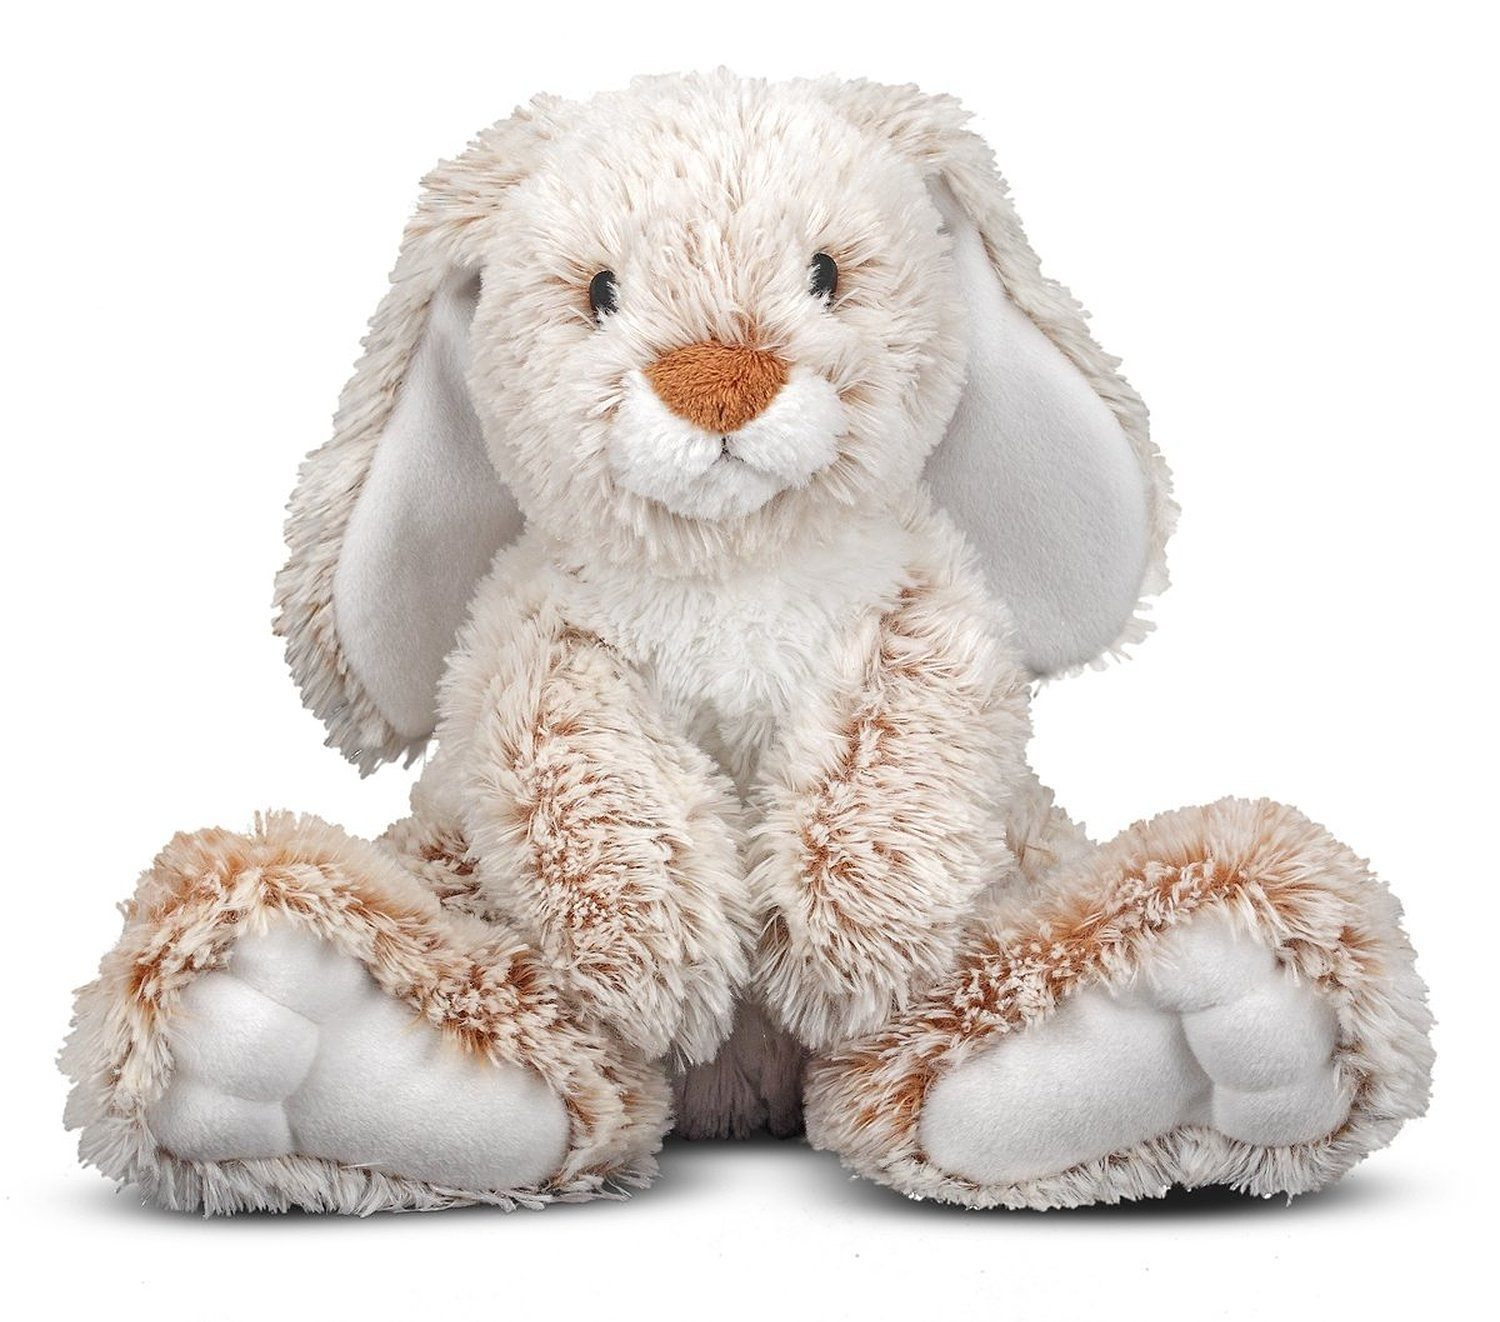 The Melissa And Doug Princess Plush Burrow Bunny